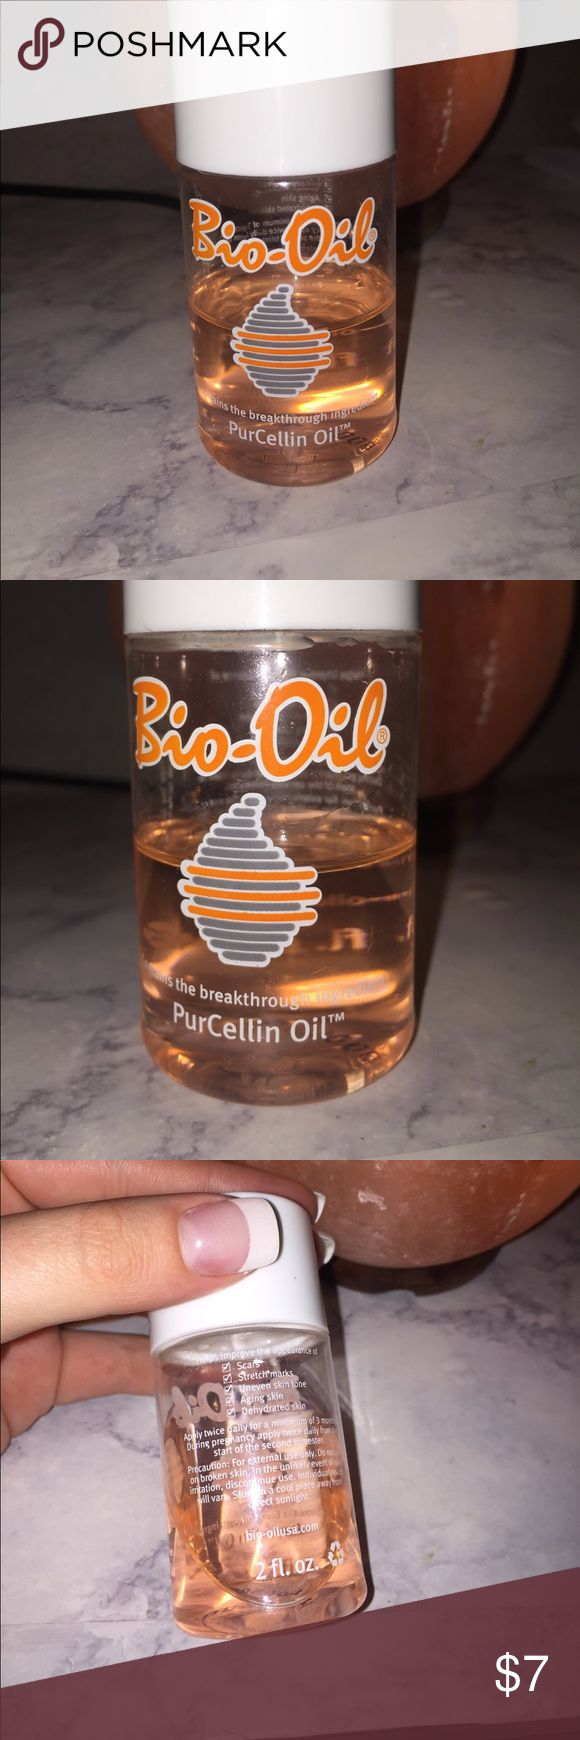 Bio-oil purcellin oil skin care 2fl oz. Gently used, half of product left! Bio oil containing the breakthrough ingredient Purcellin oil. Helps improve the appearance of scars, stretch marks, uneven skin tone, aging skin, dehydrated skin. Container is 2fl oz Other